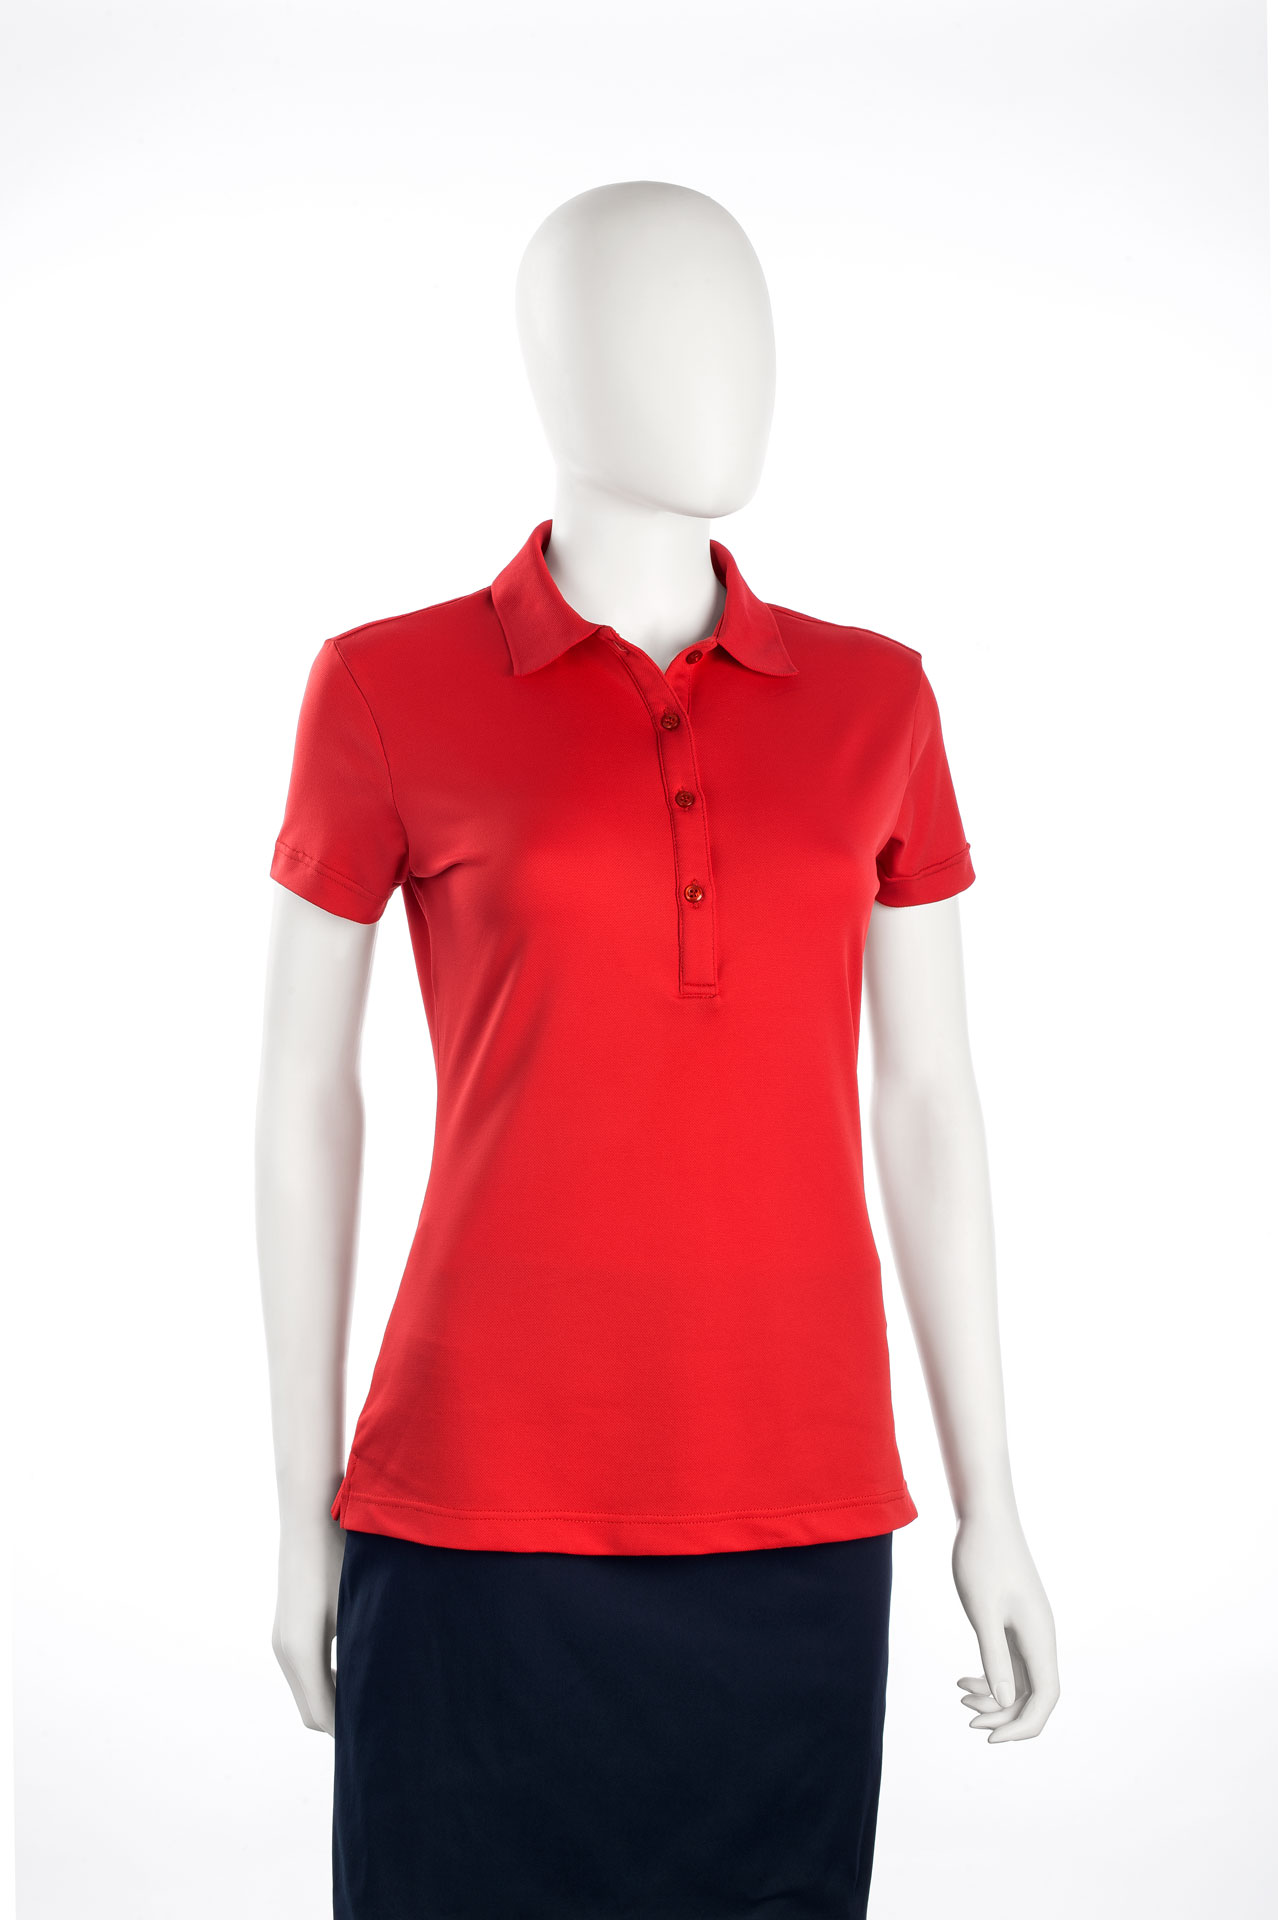 Polo donna manica corta art.7000 colore 0299